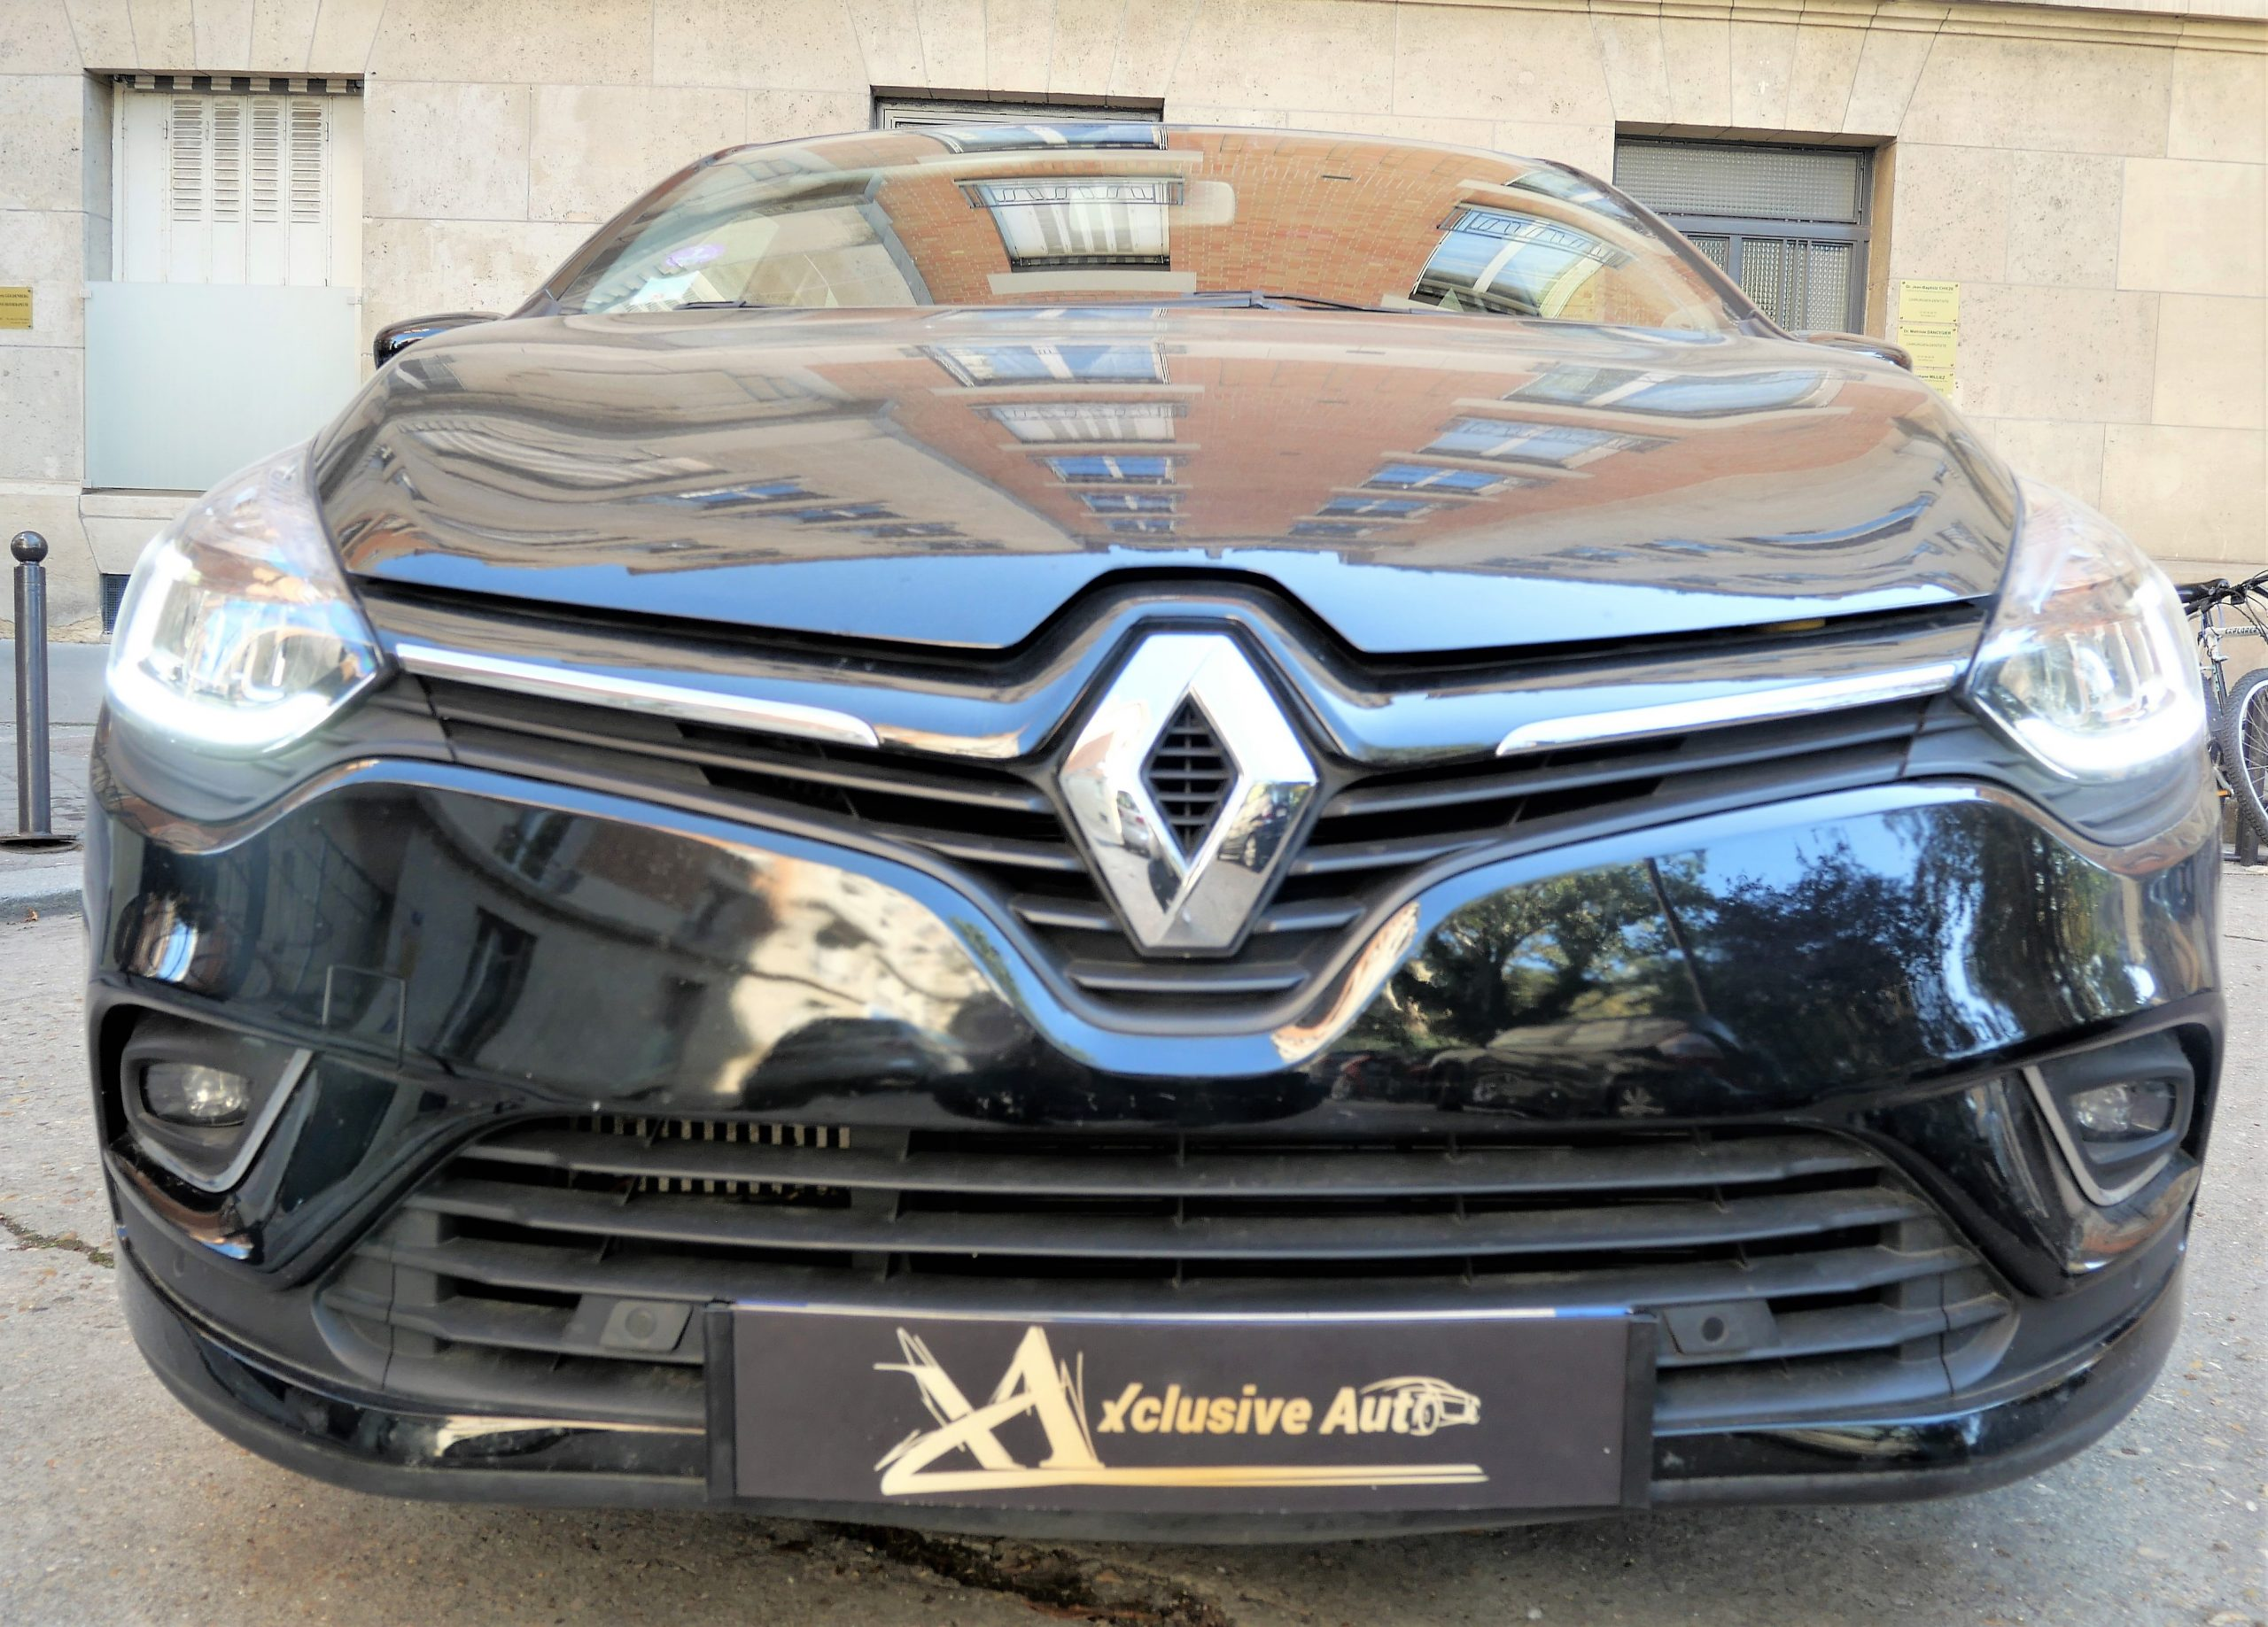 RENAULT Clio IV INTENS Phase 2 0.9 TCe 90 ch 7